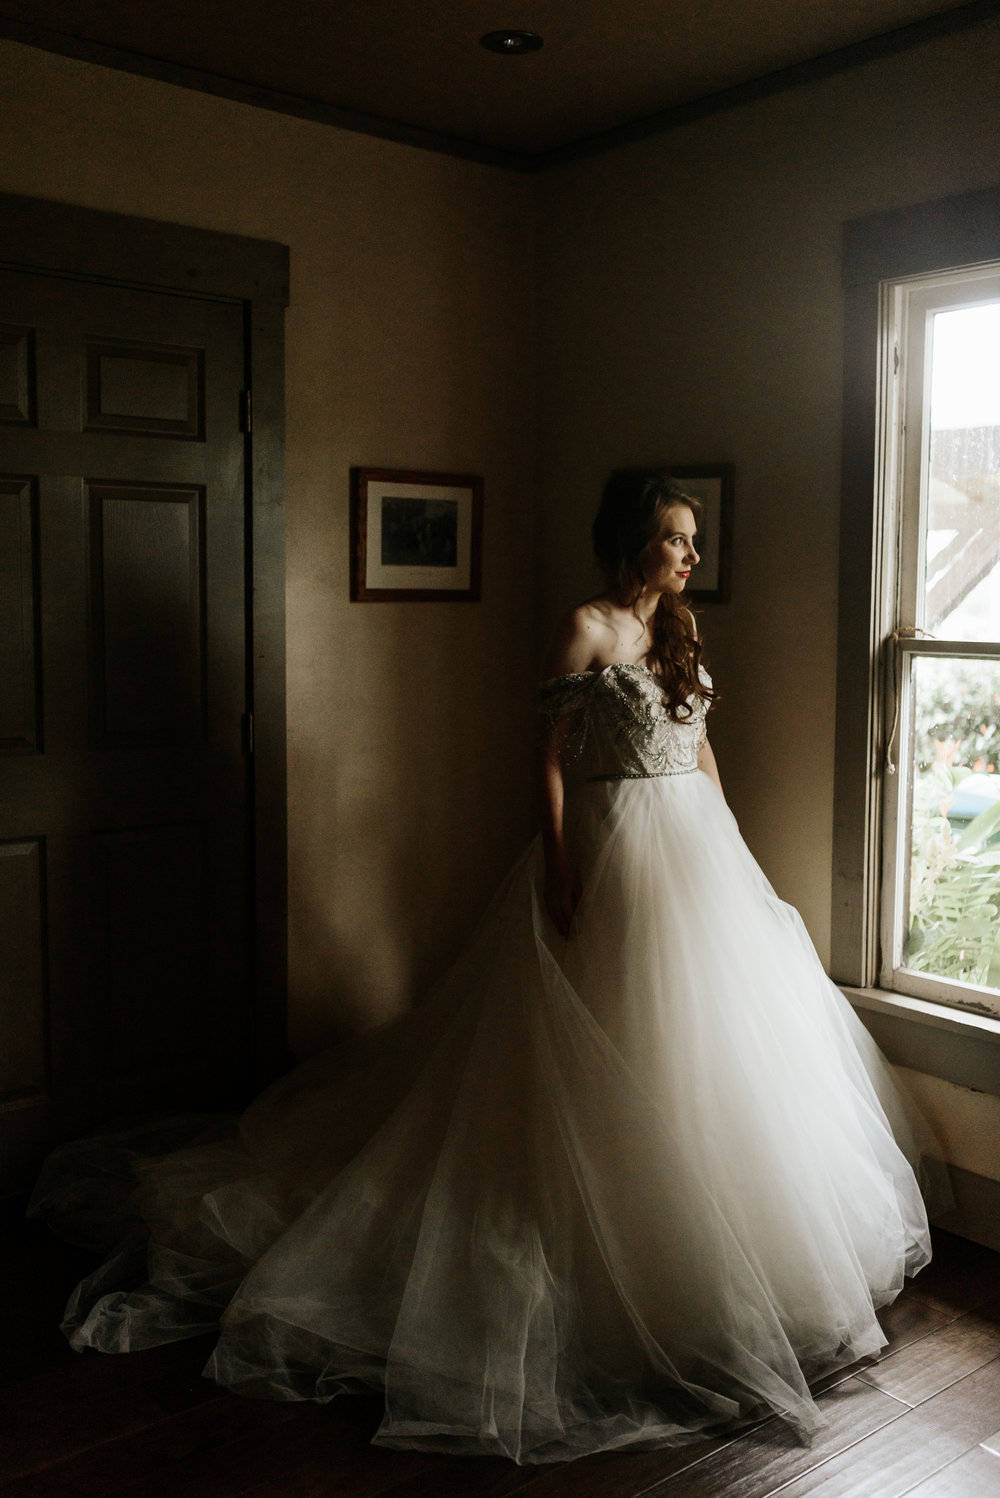 Grant-Station-Styled-Shoot-Whimsical-Moody-Fairytale-Wedding-Photography-by-V-9657.jpg